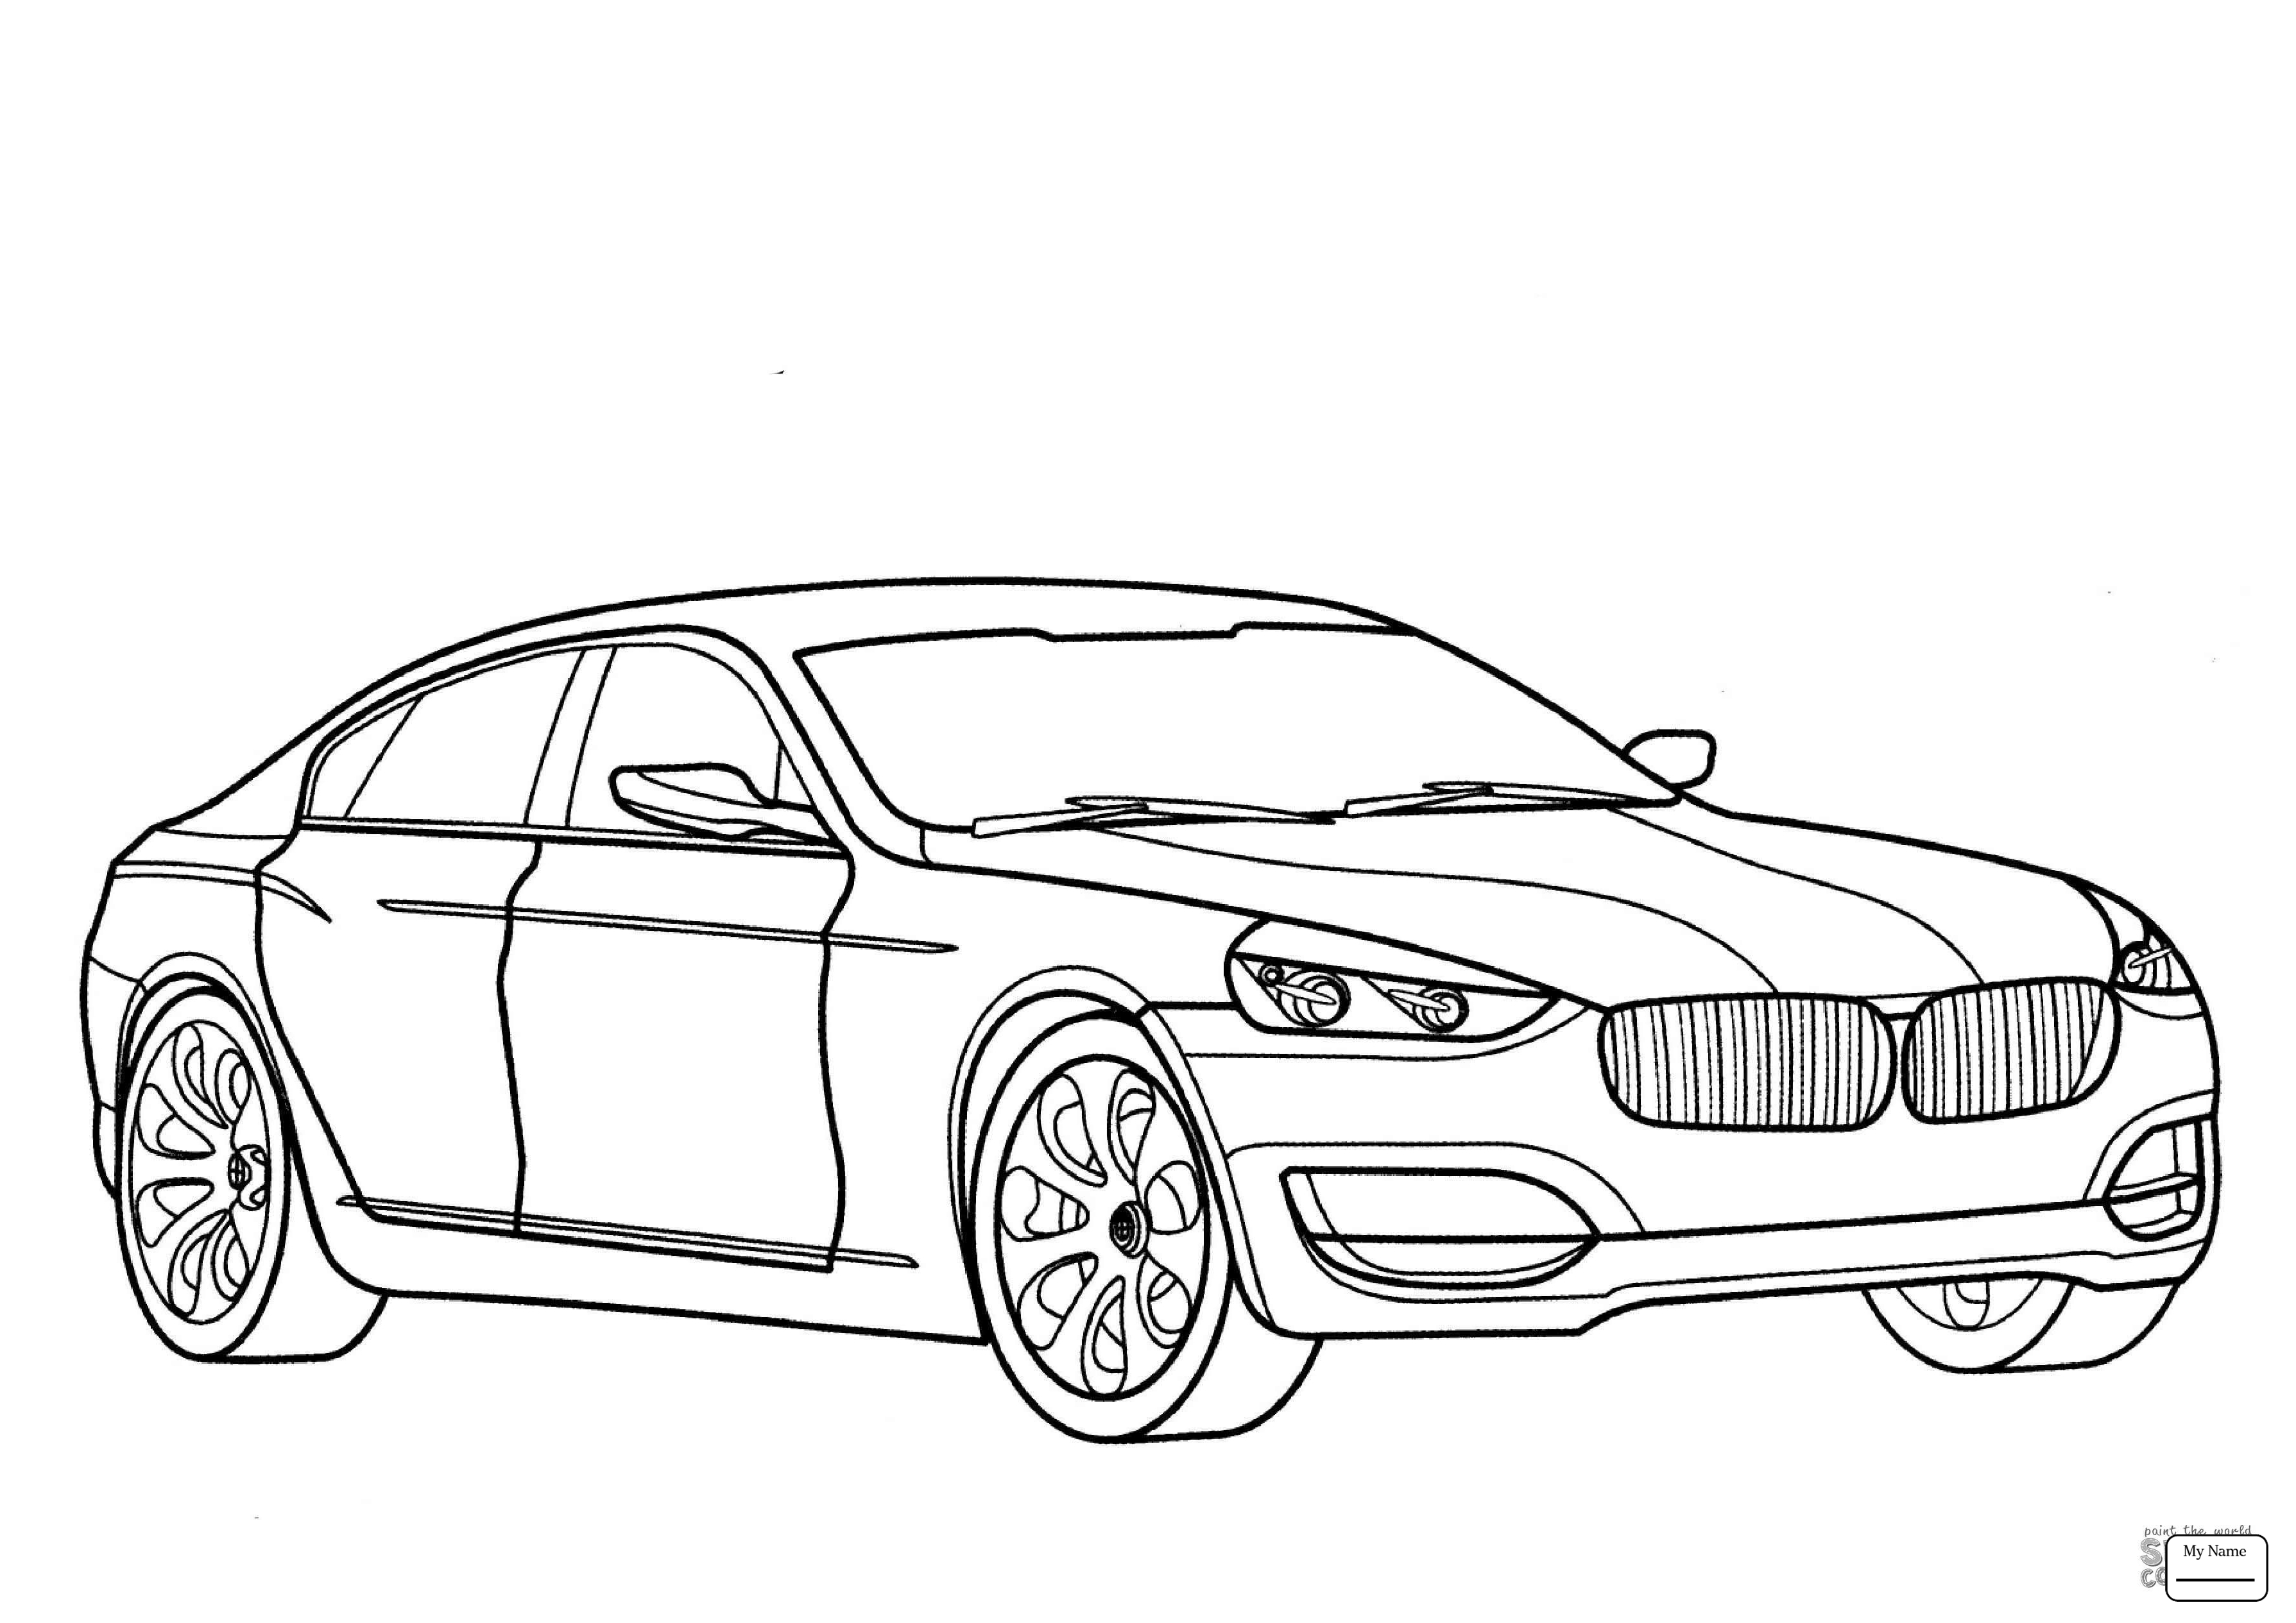 Bmw Car Drawing at GetDrawings.com | Free for personal use ...